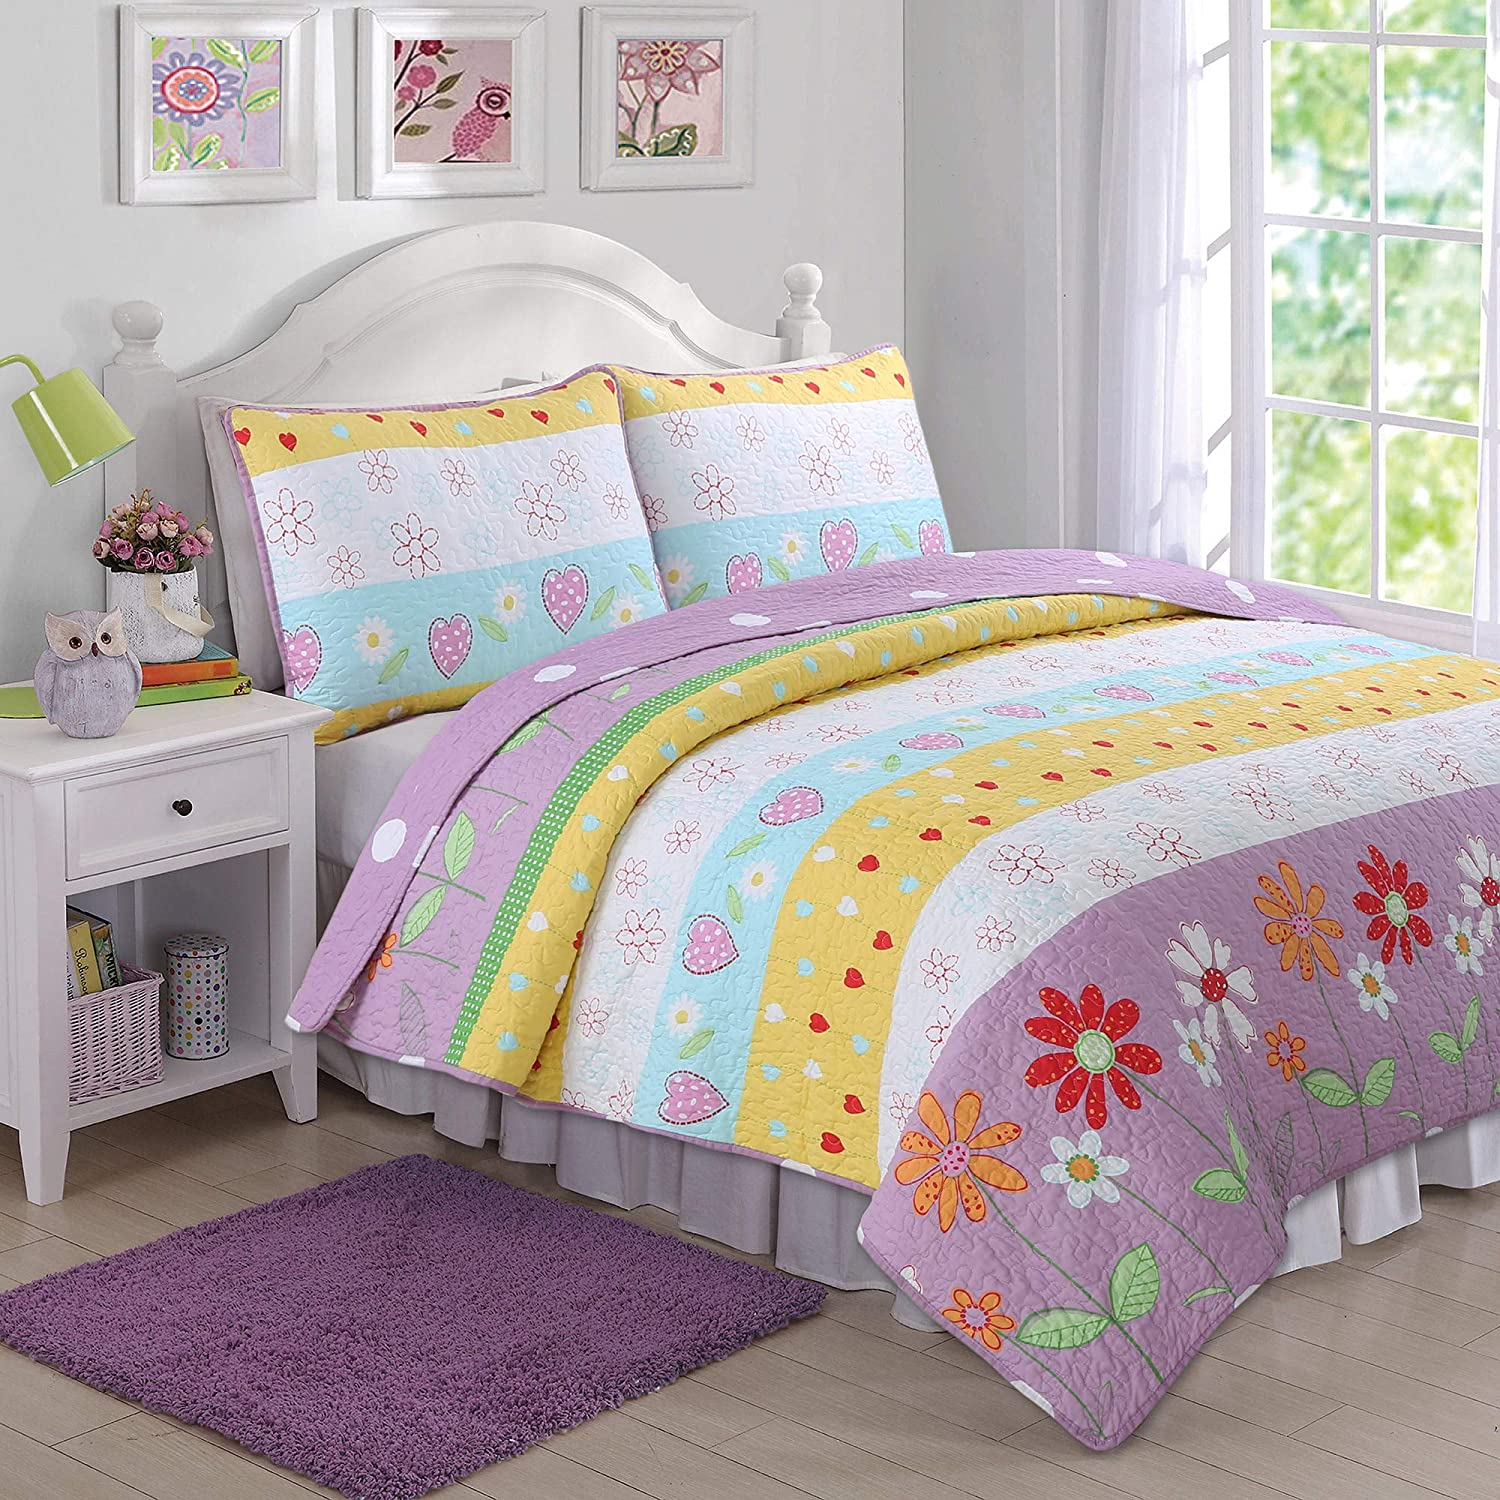 Playful Max 68% OFF Choice Girl Fun Heart Floral Kids 3-Piece Multi-Colored Purple